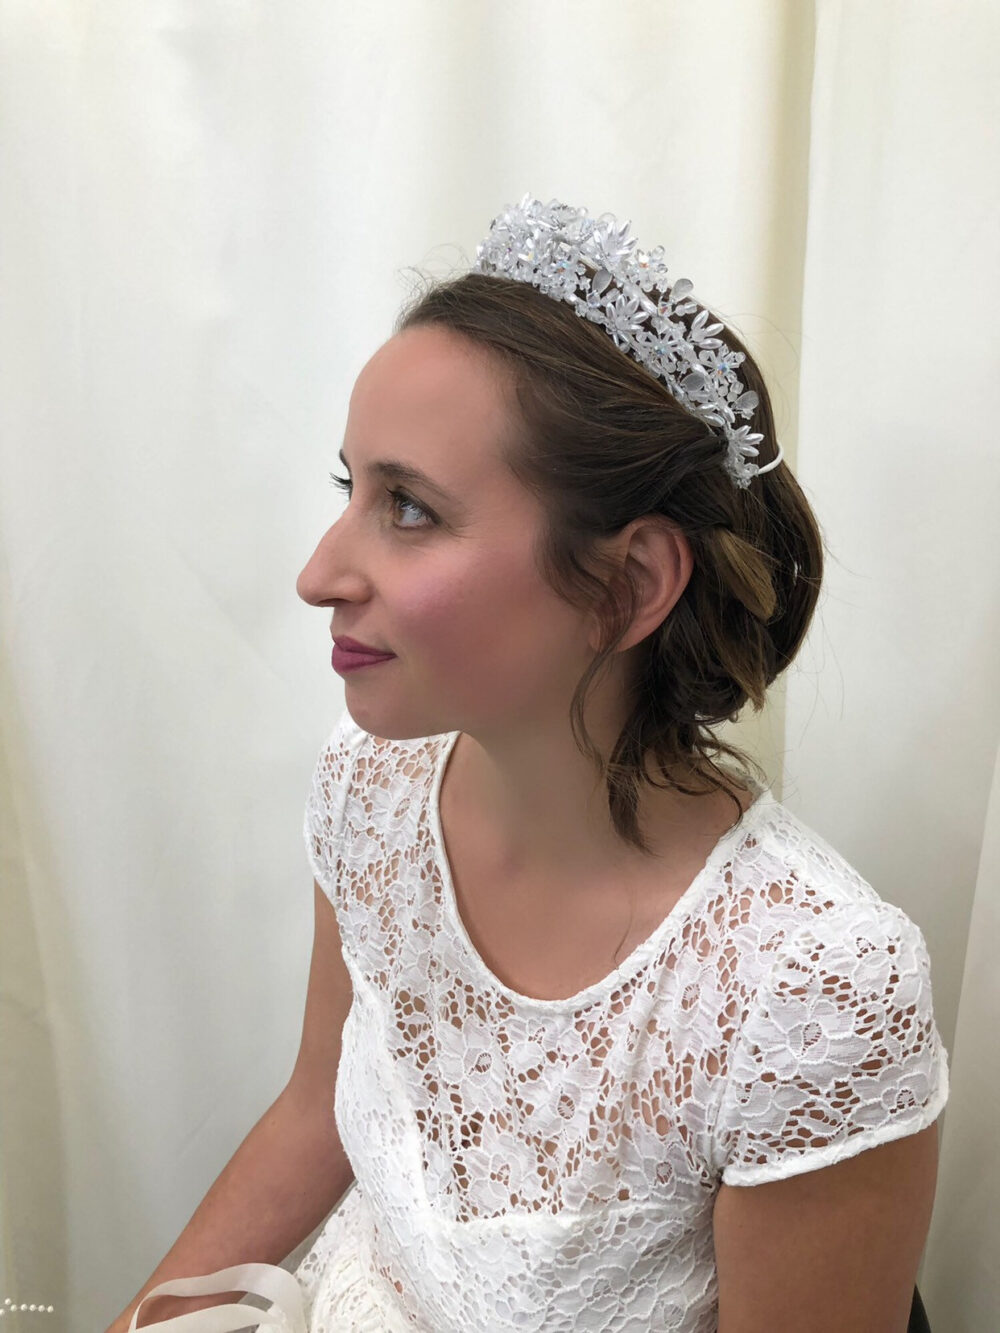 Beaded Wedding Tiara, Crown, Hair Accessory, Vintage Crown/Tiara, Bridal Sweet 16 Vintage